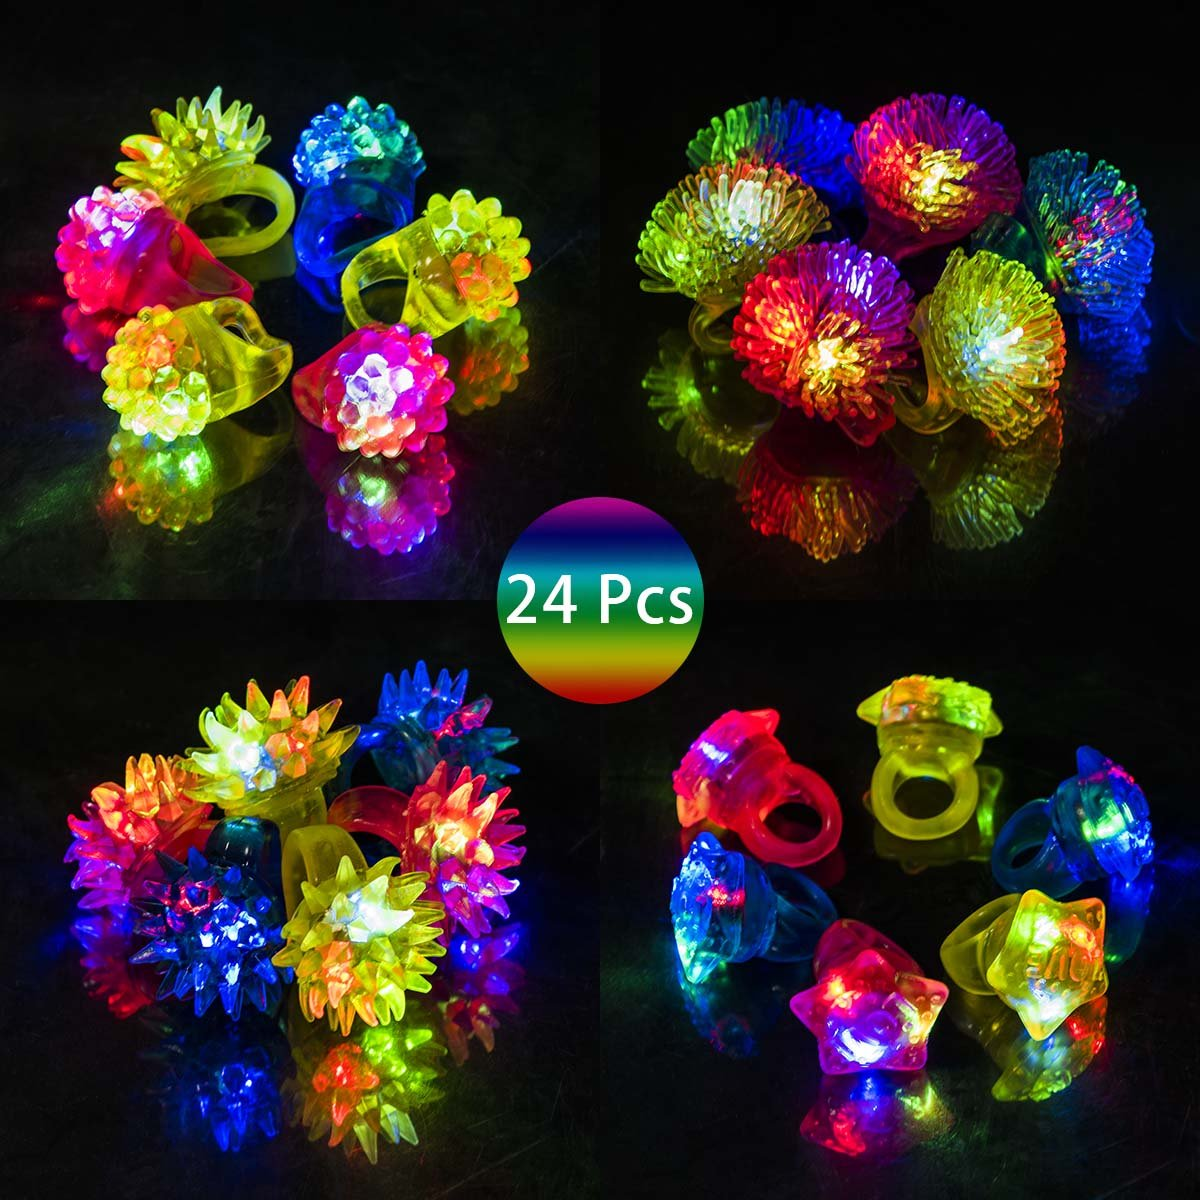 GIGALUMI Flashing LED Light Up Rings, Novelty LED Bumpy Ring for Party Favors, Kids. 24-Pack